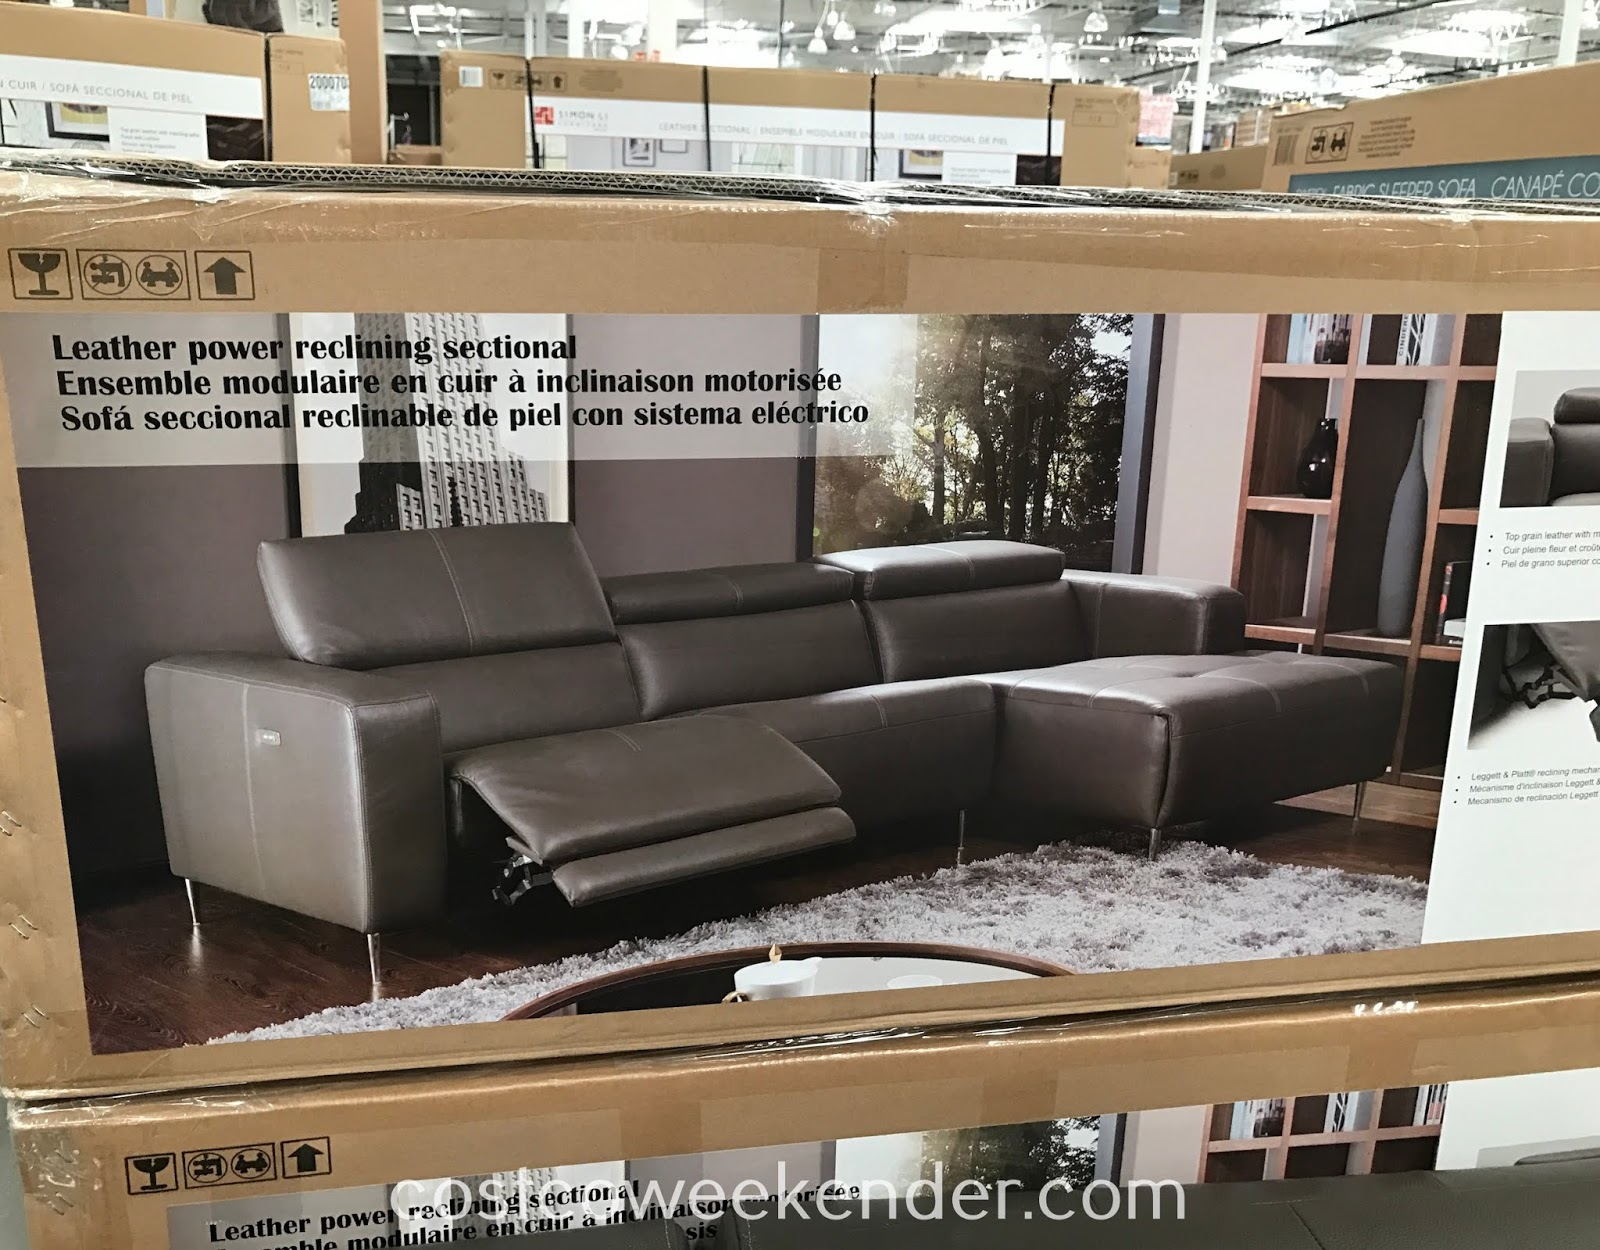 Chill in front of the TV or simply take a much needed nap on the Leather Power Reclining Sectional